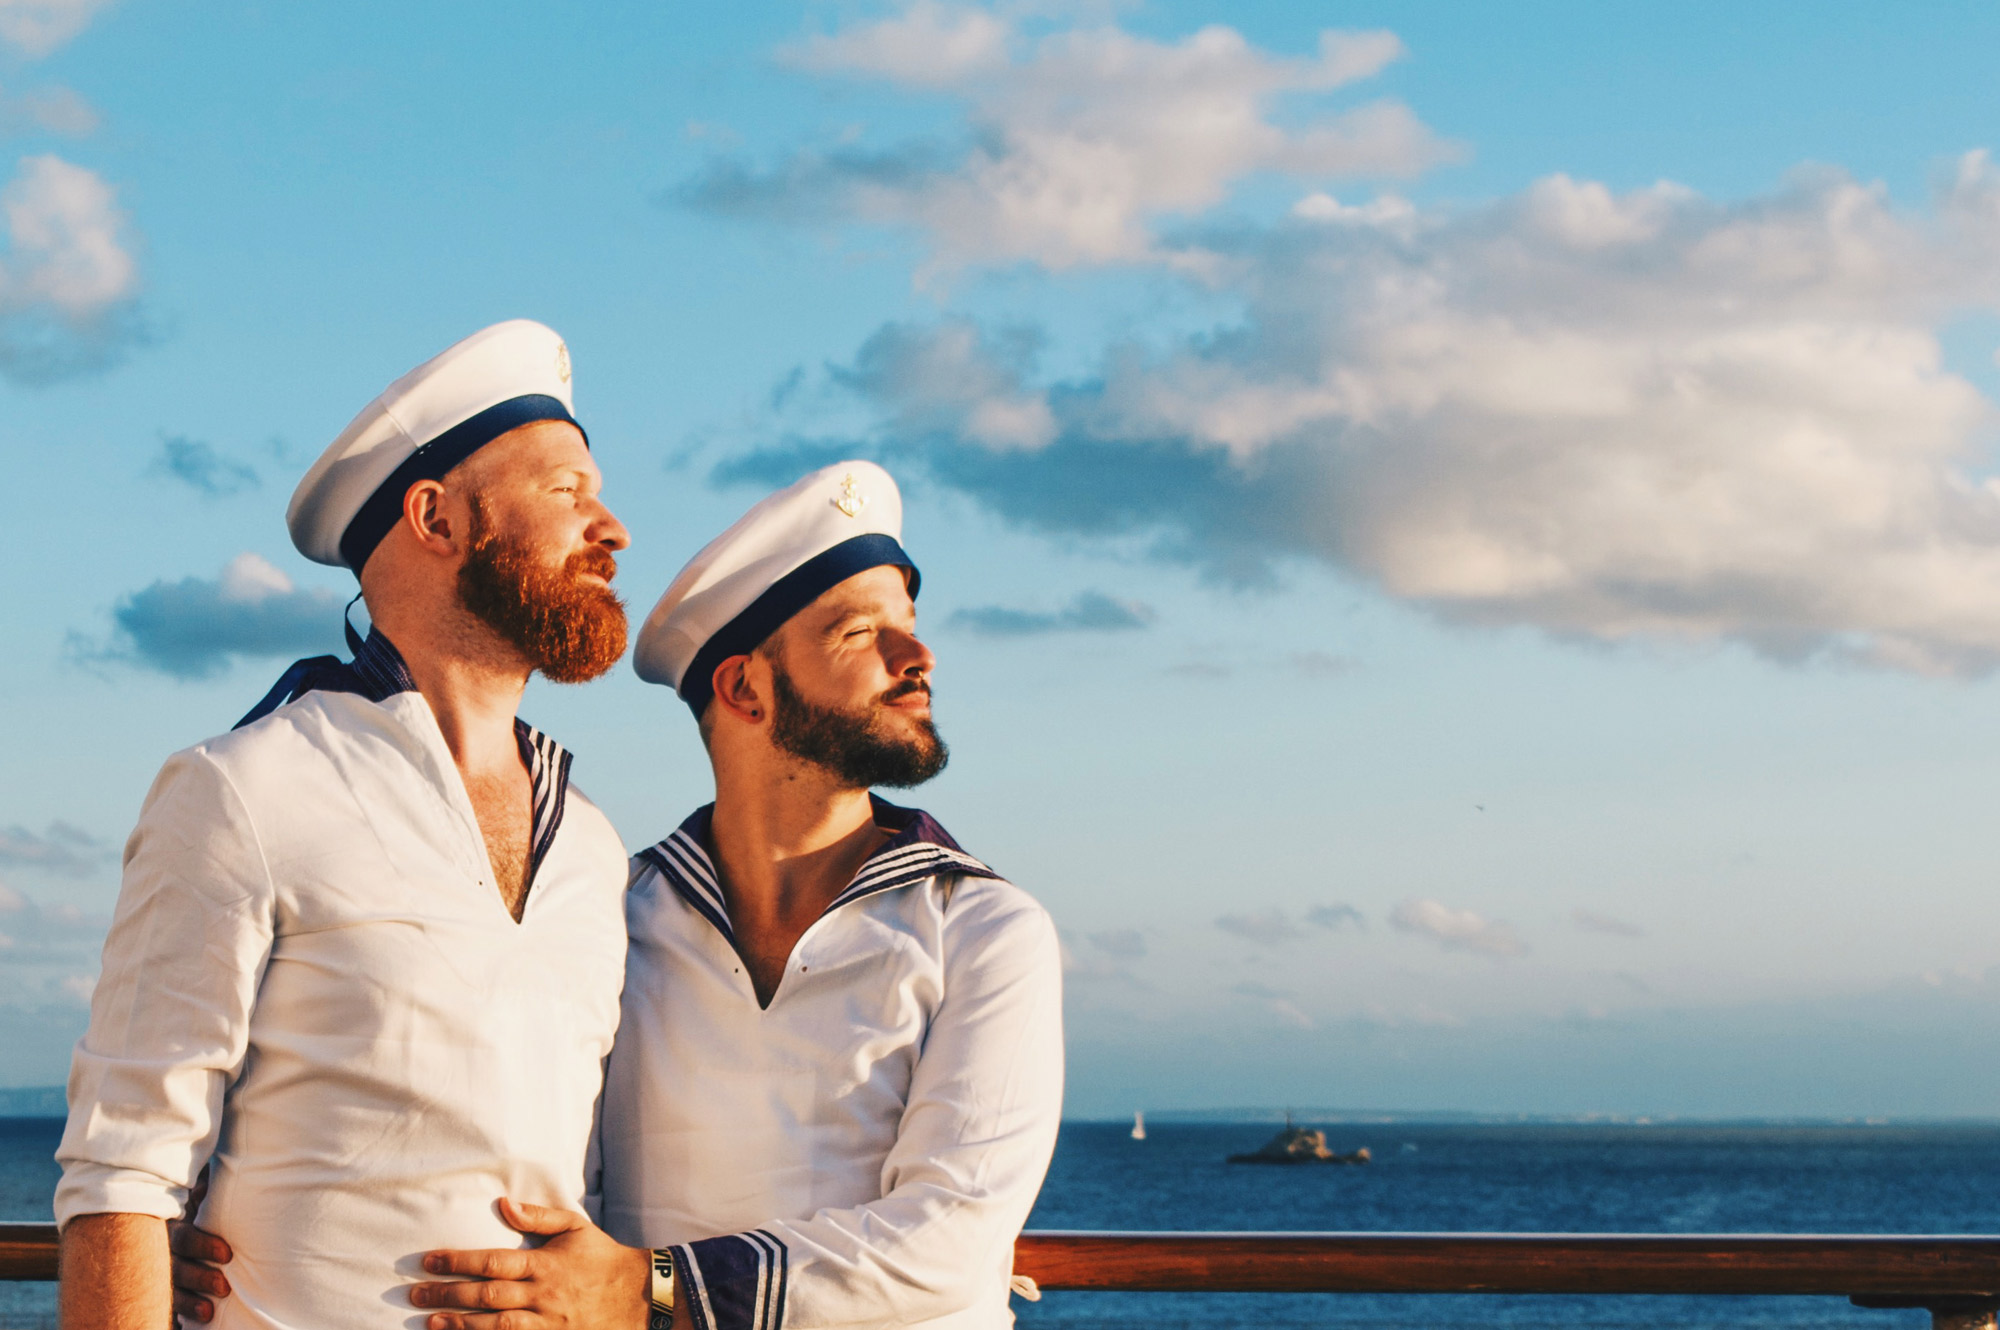 Over 55 cruises gay